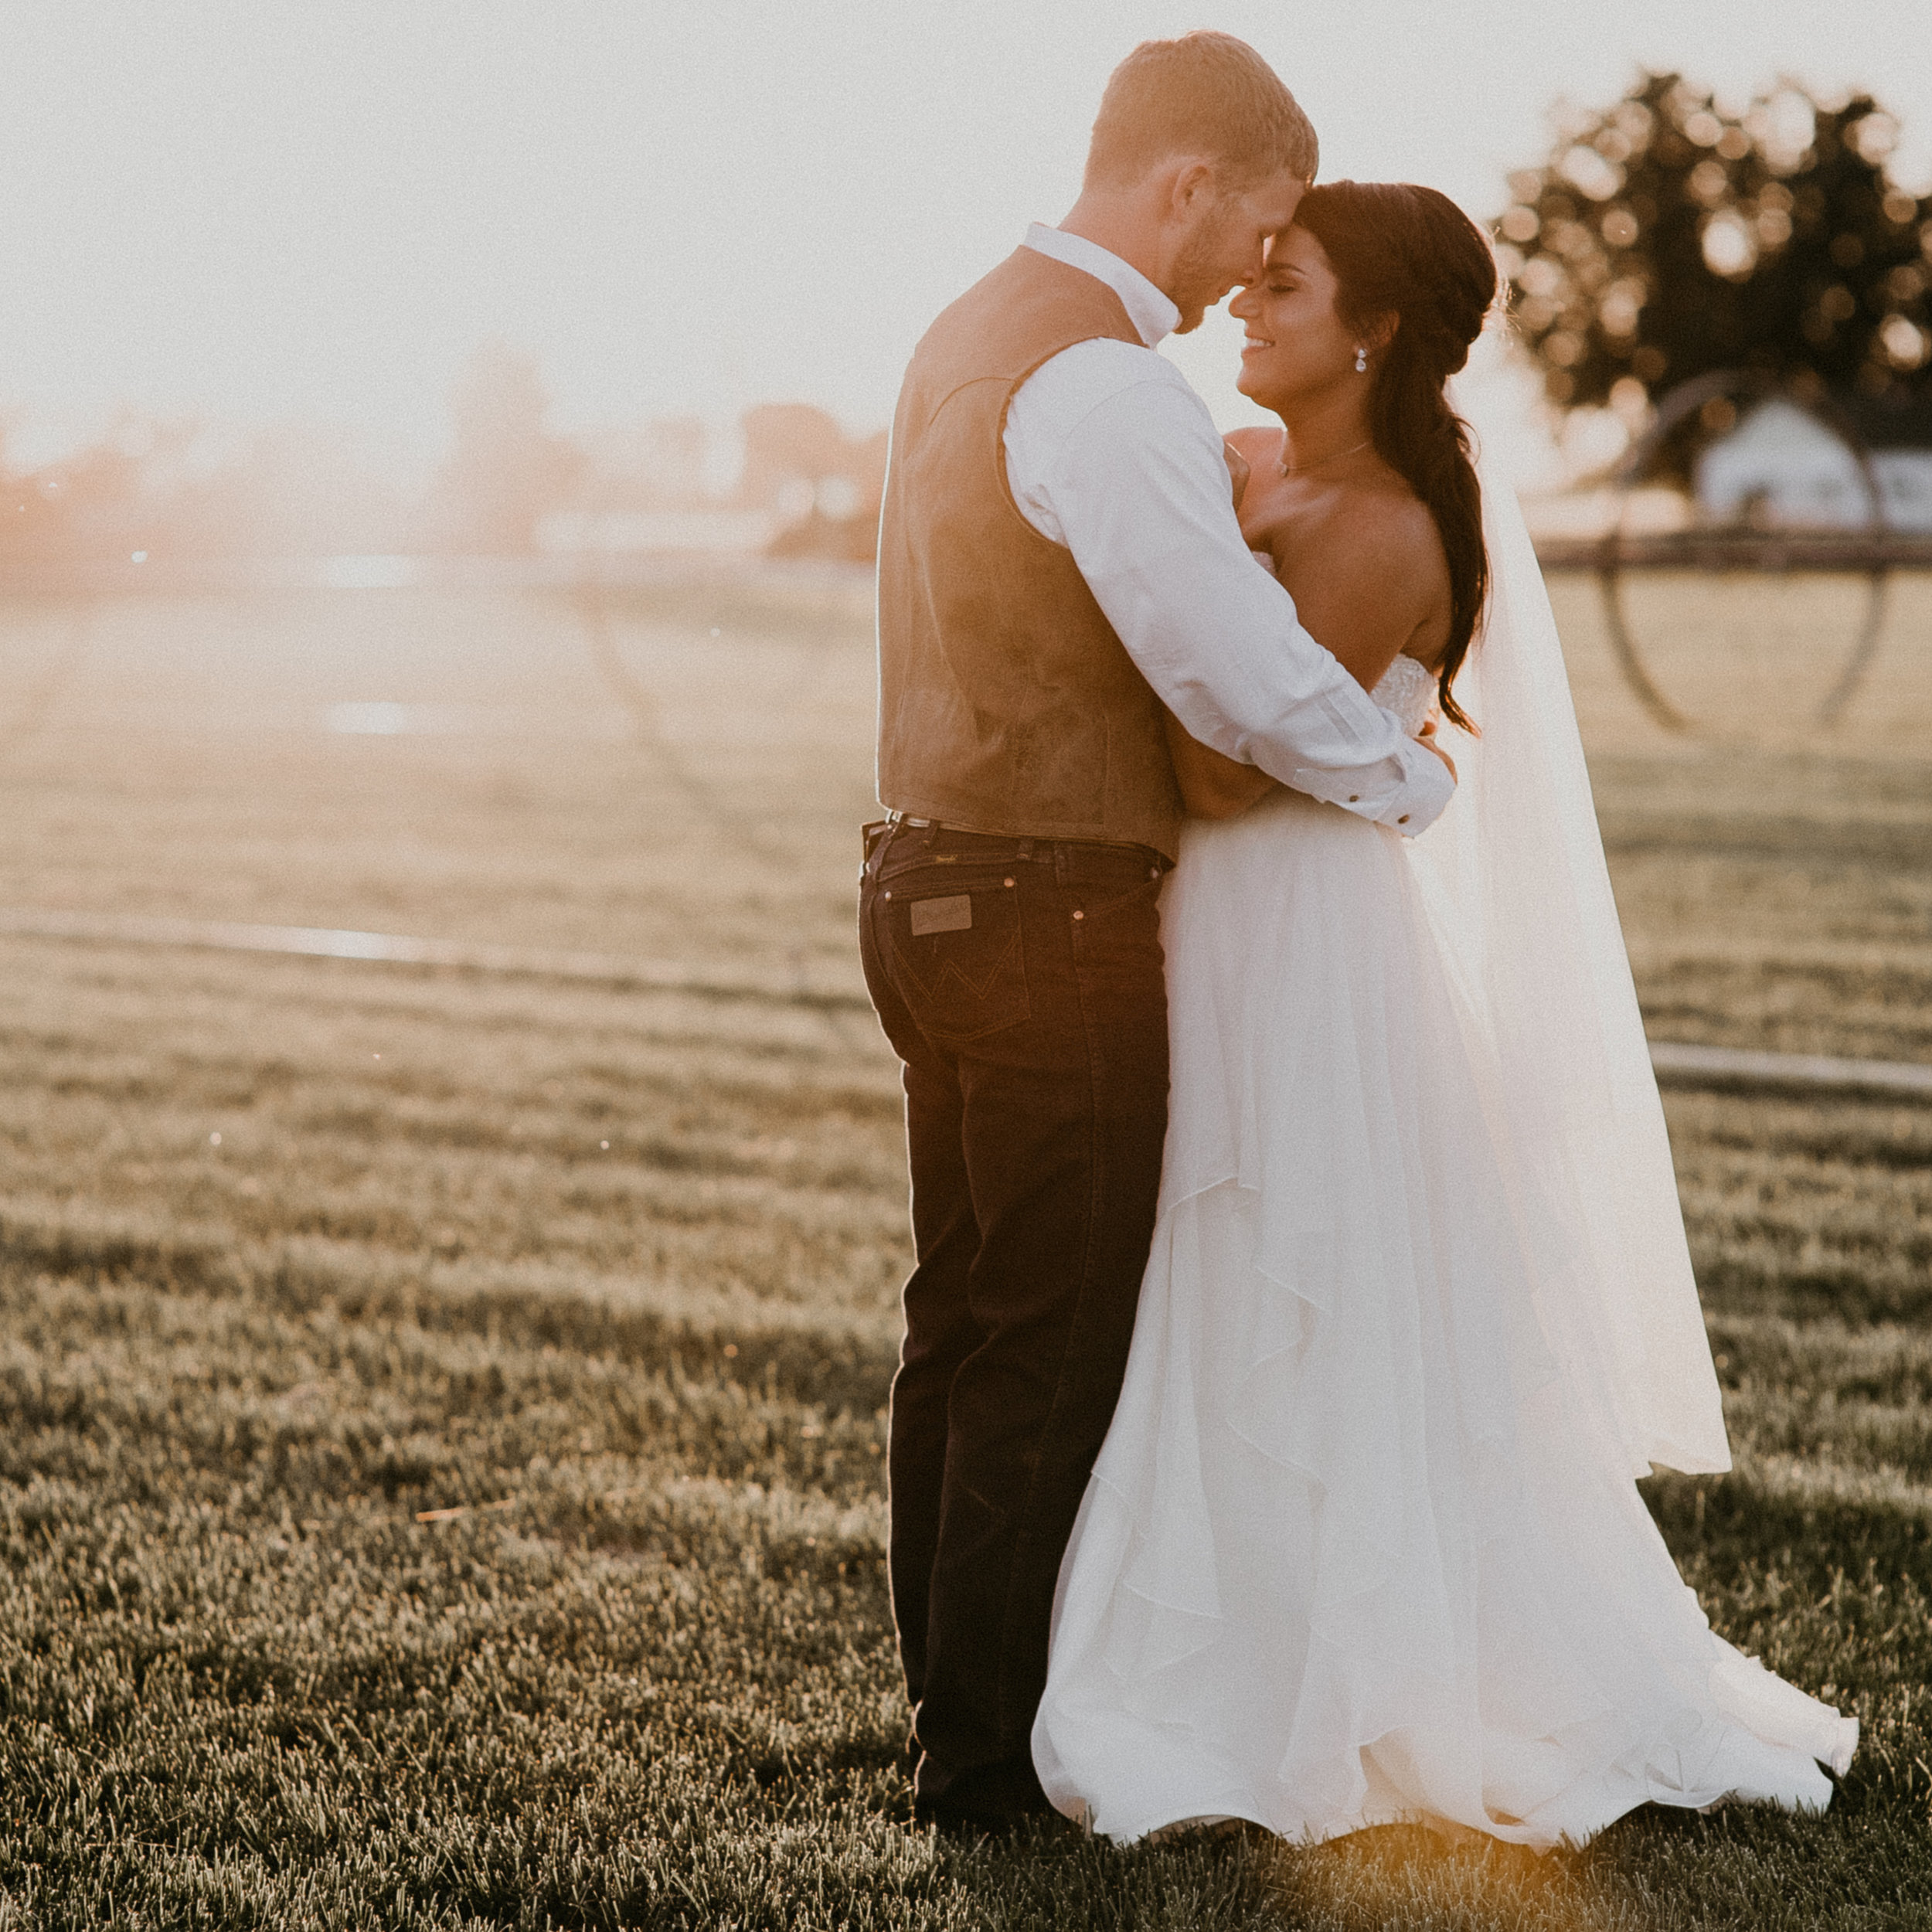 Demmi and Nick, Ira and Lucy Boise Wedding Planner, Makayla Madden Photography, Still Water Hollow